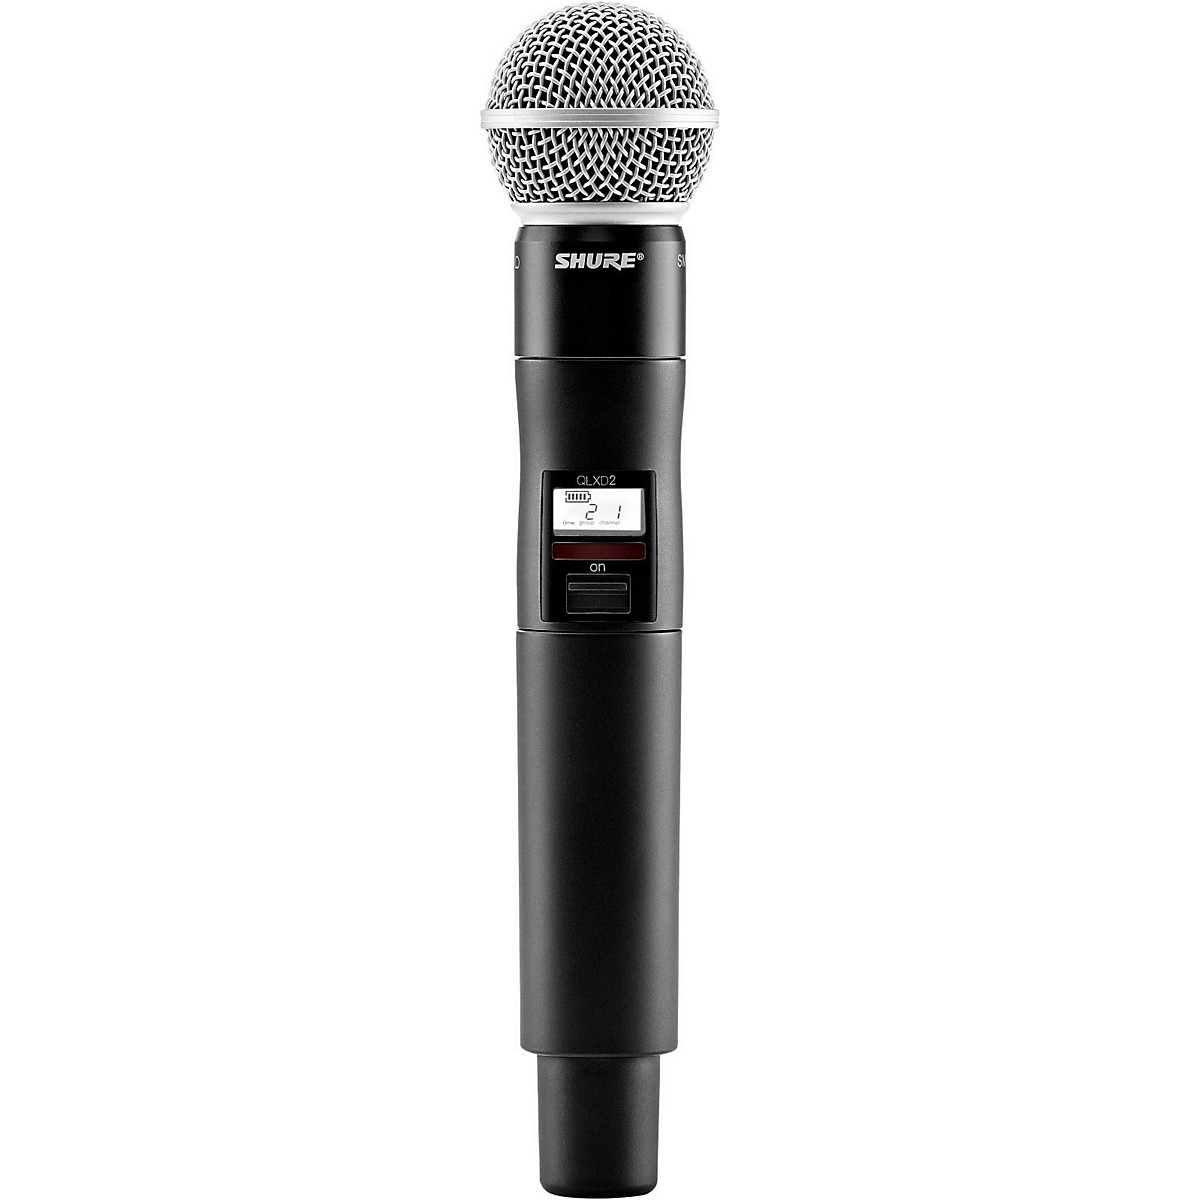 Shure Wireless Handheld Transmitter with SM58 Microphone